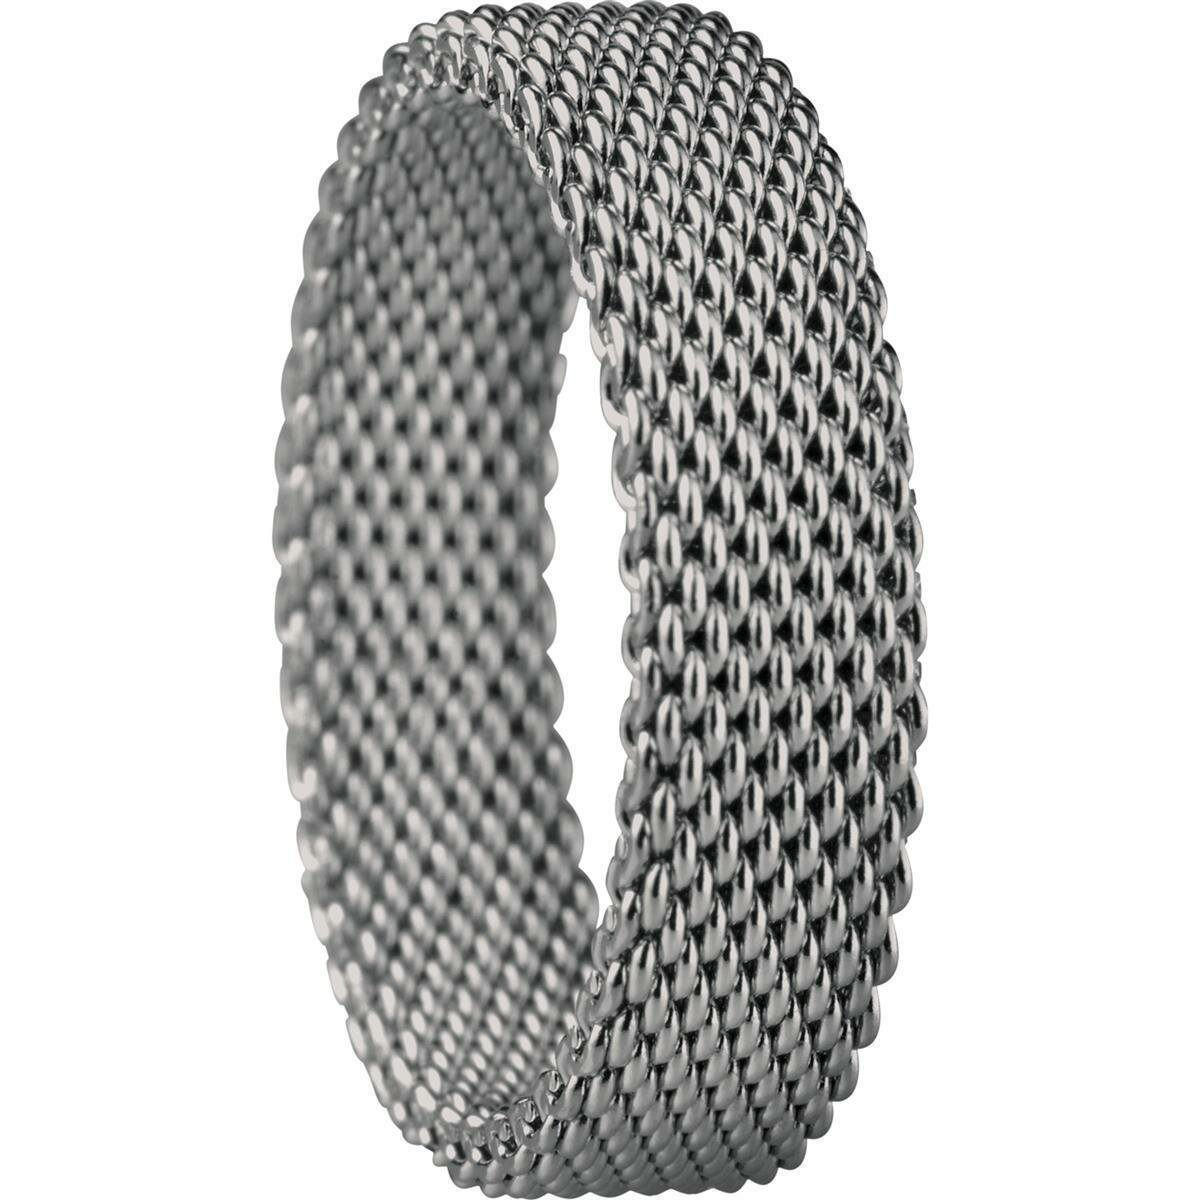 Bering Innenring 551-10-82 Milanaise silber